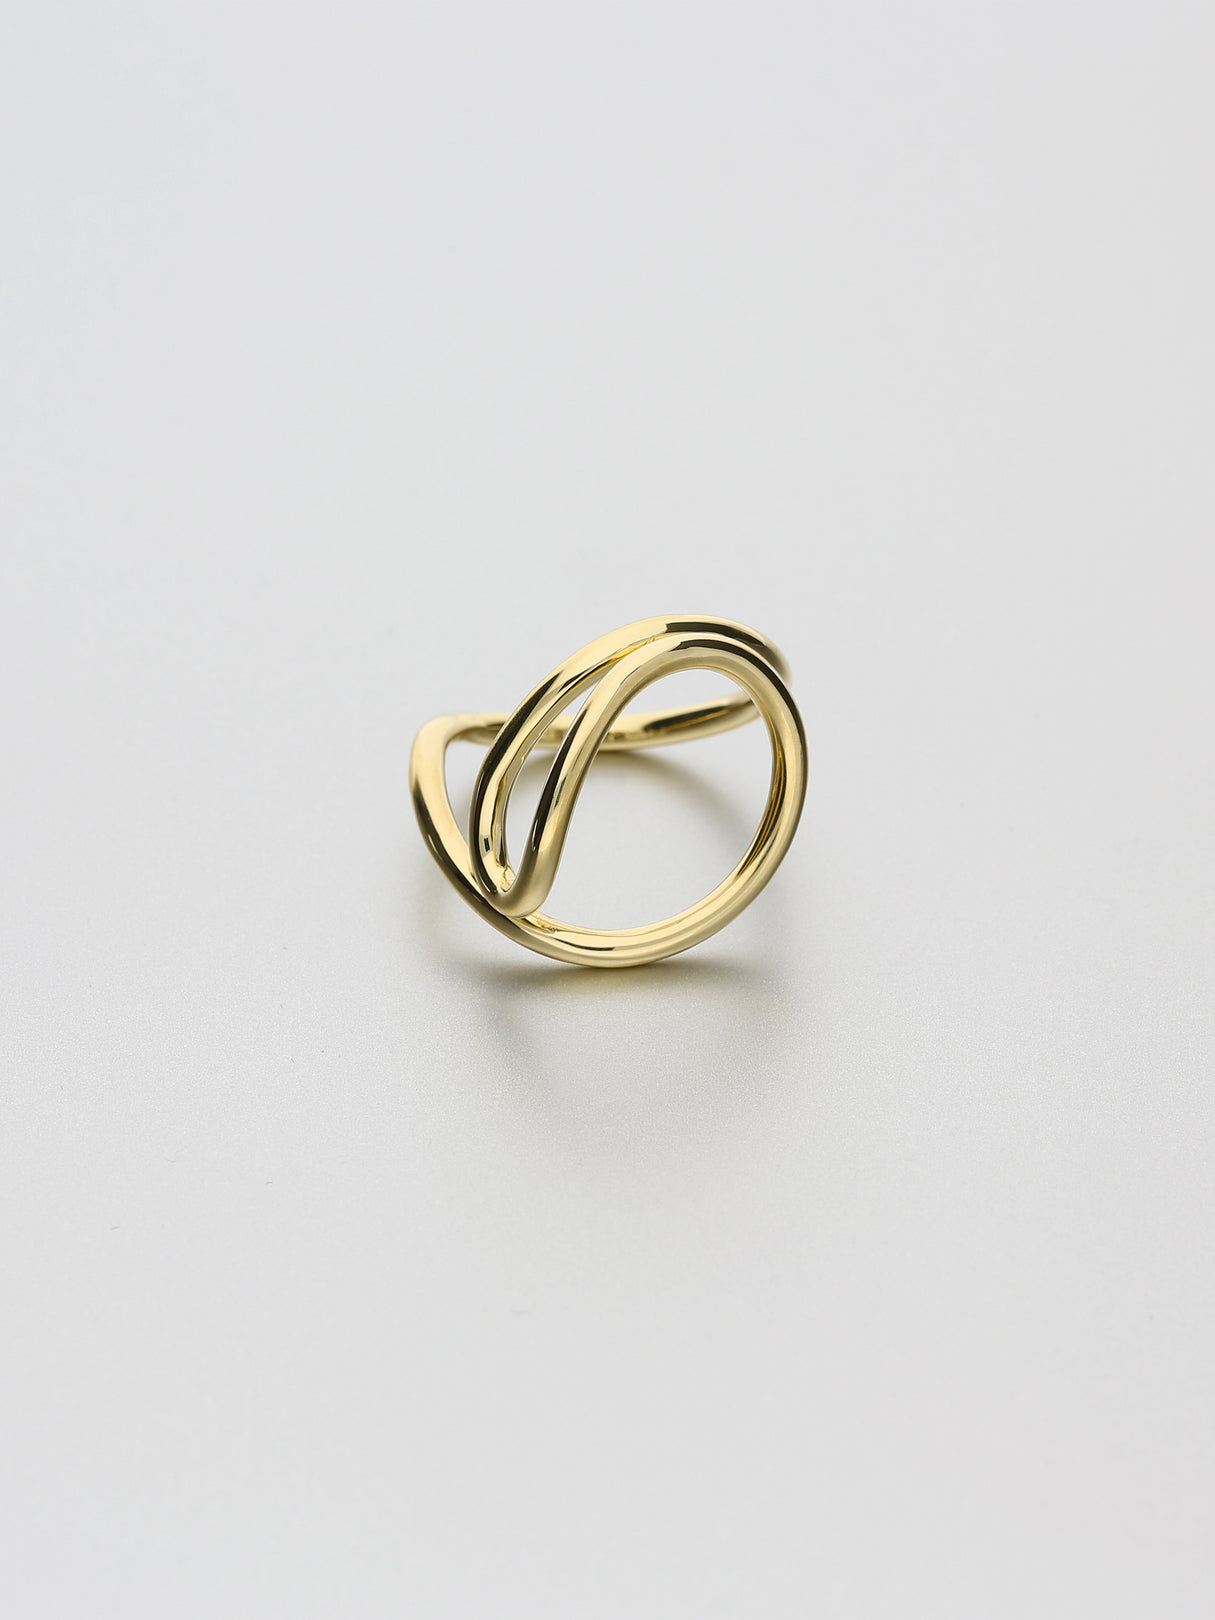 Aeon Ring, IV Yellow gold